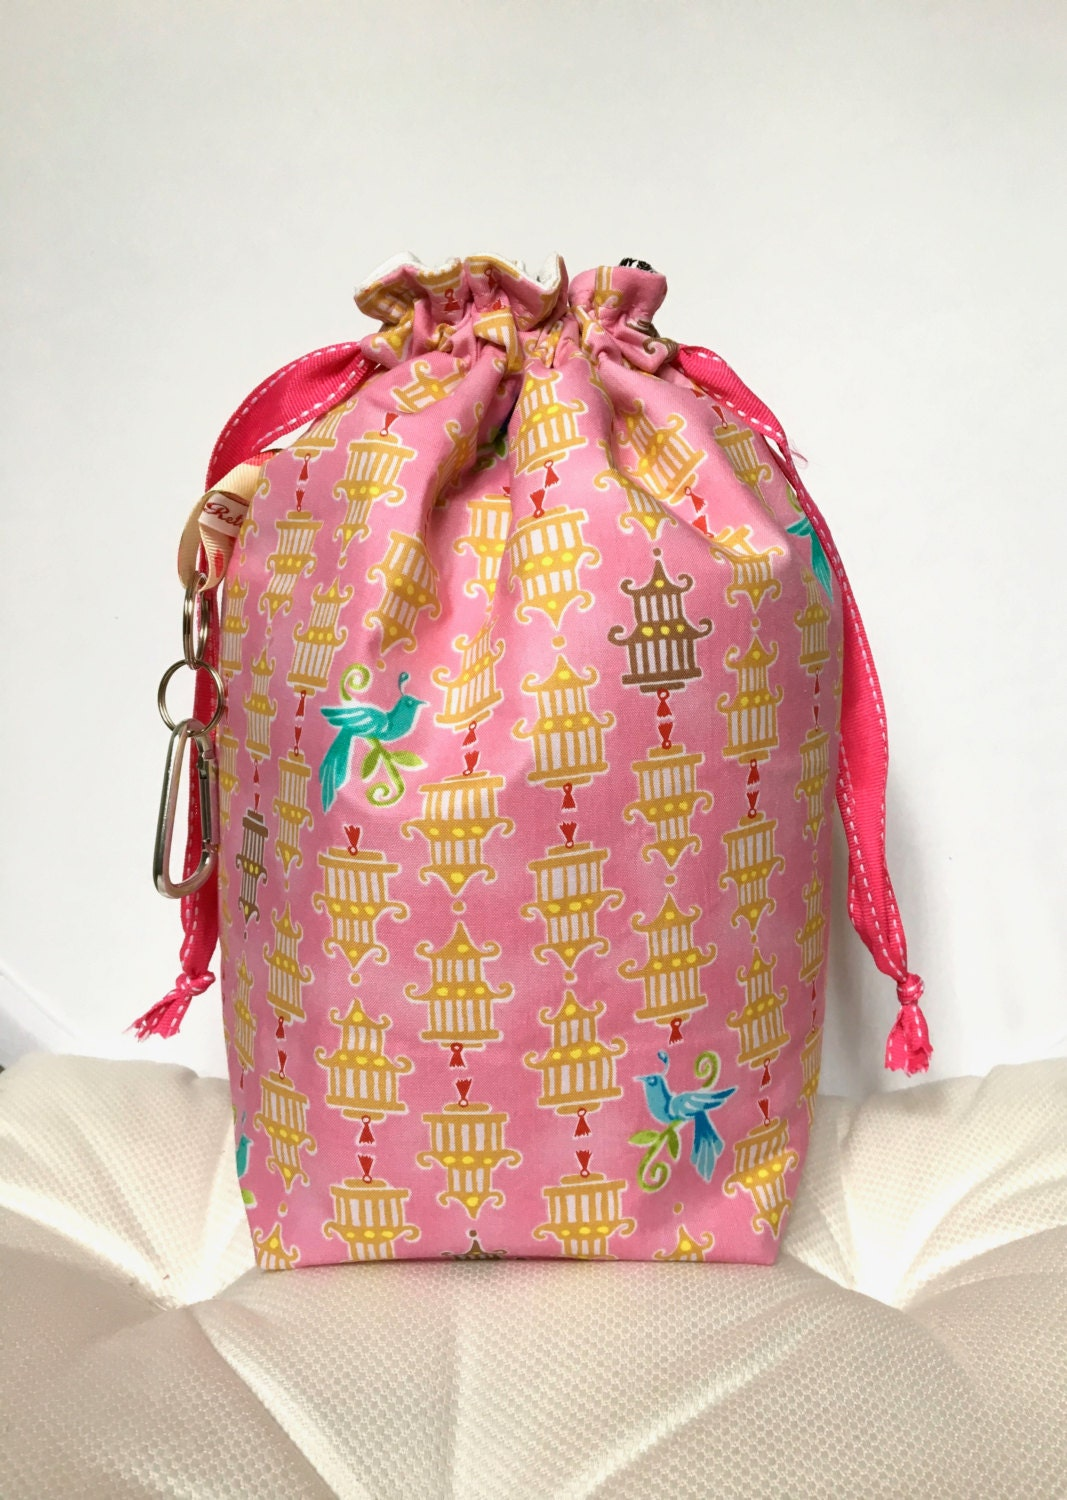 Knitting Project Bags Uk : Project bag knitting craft drawstring birdcage